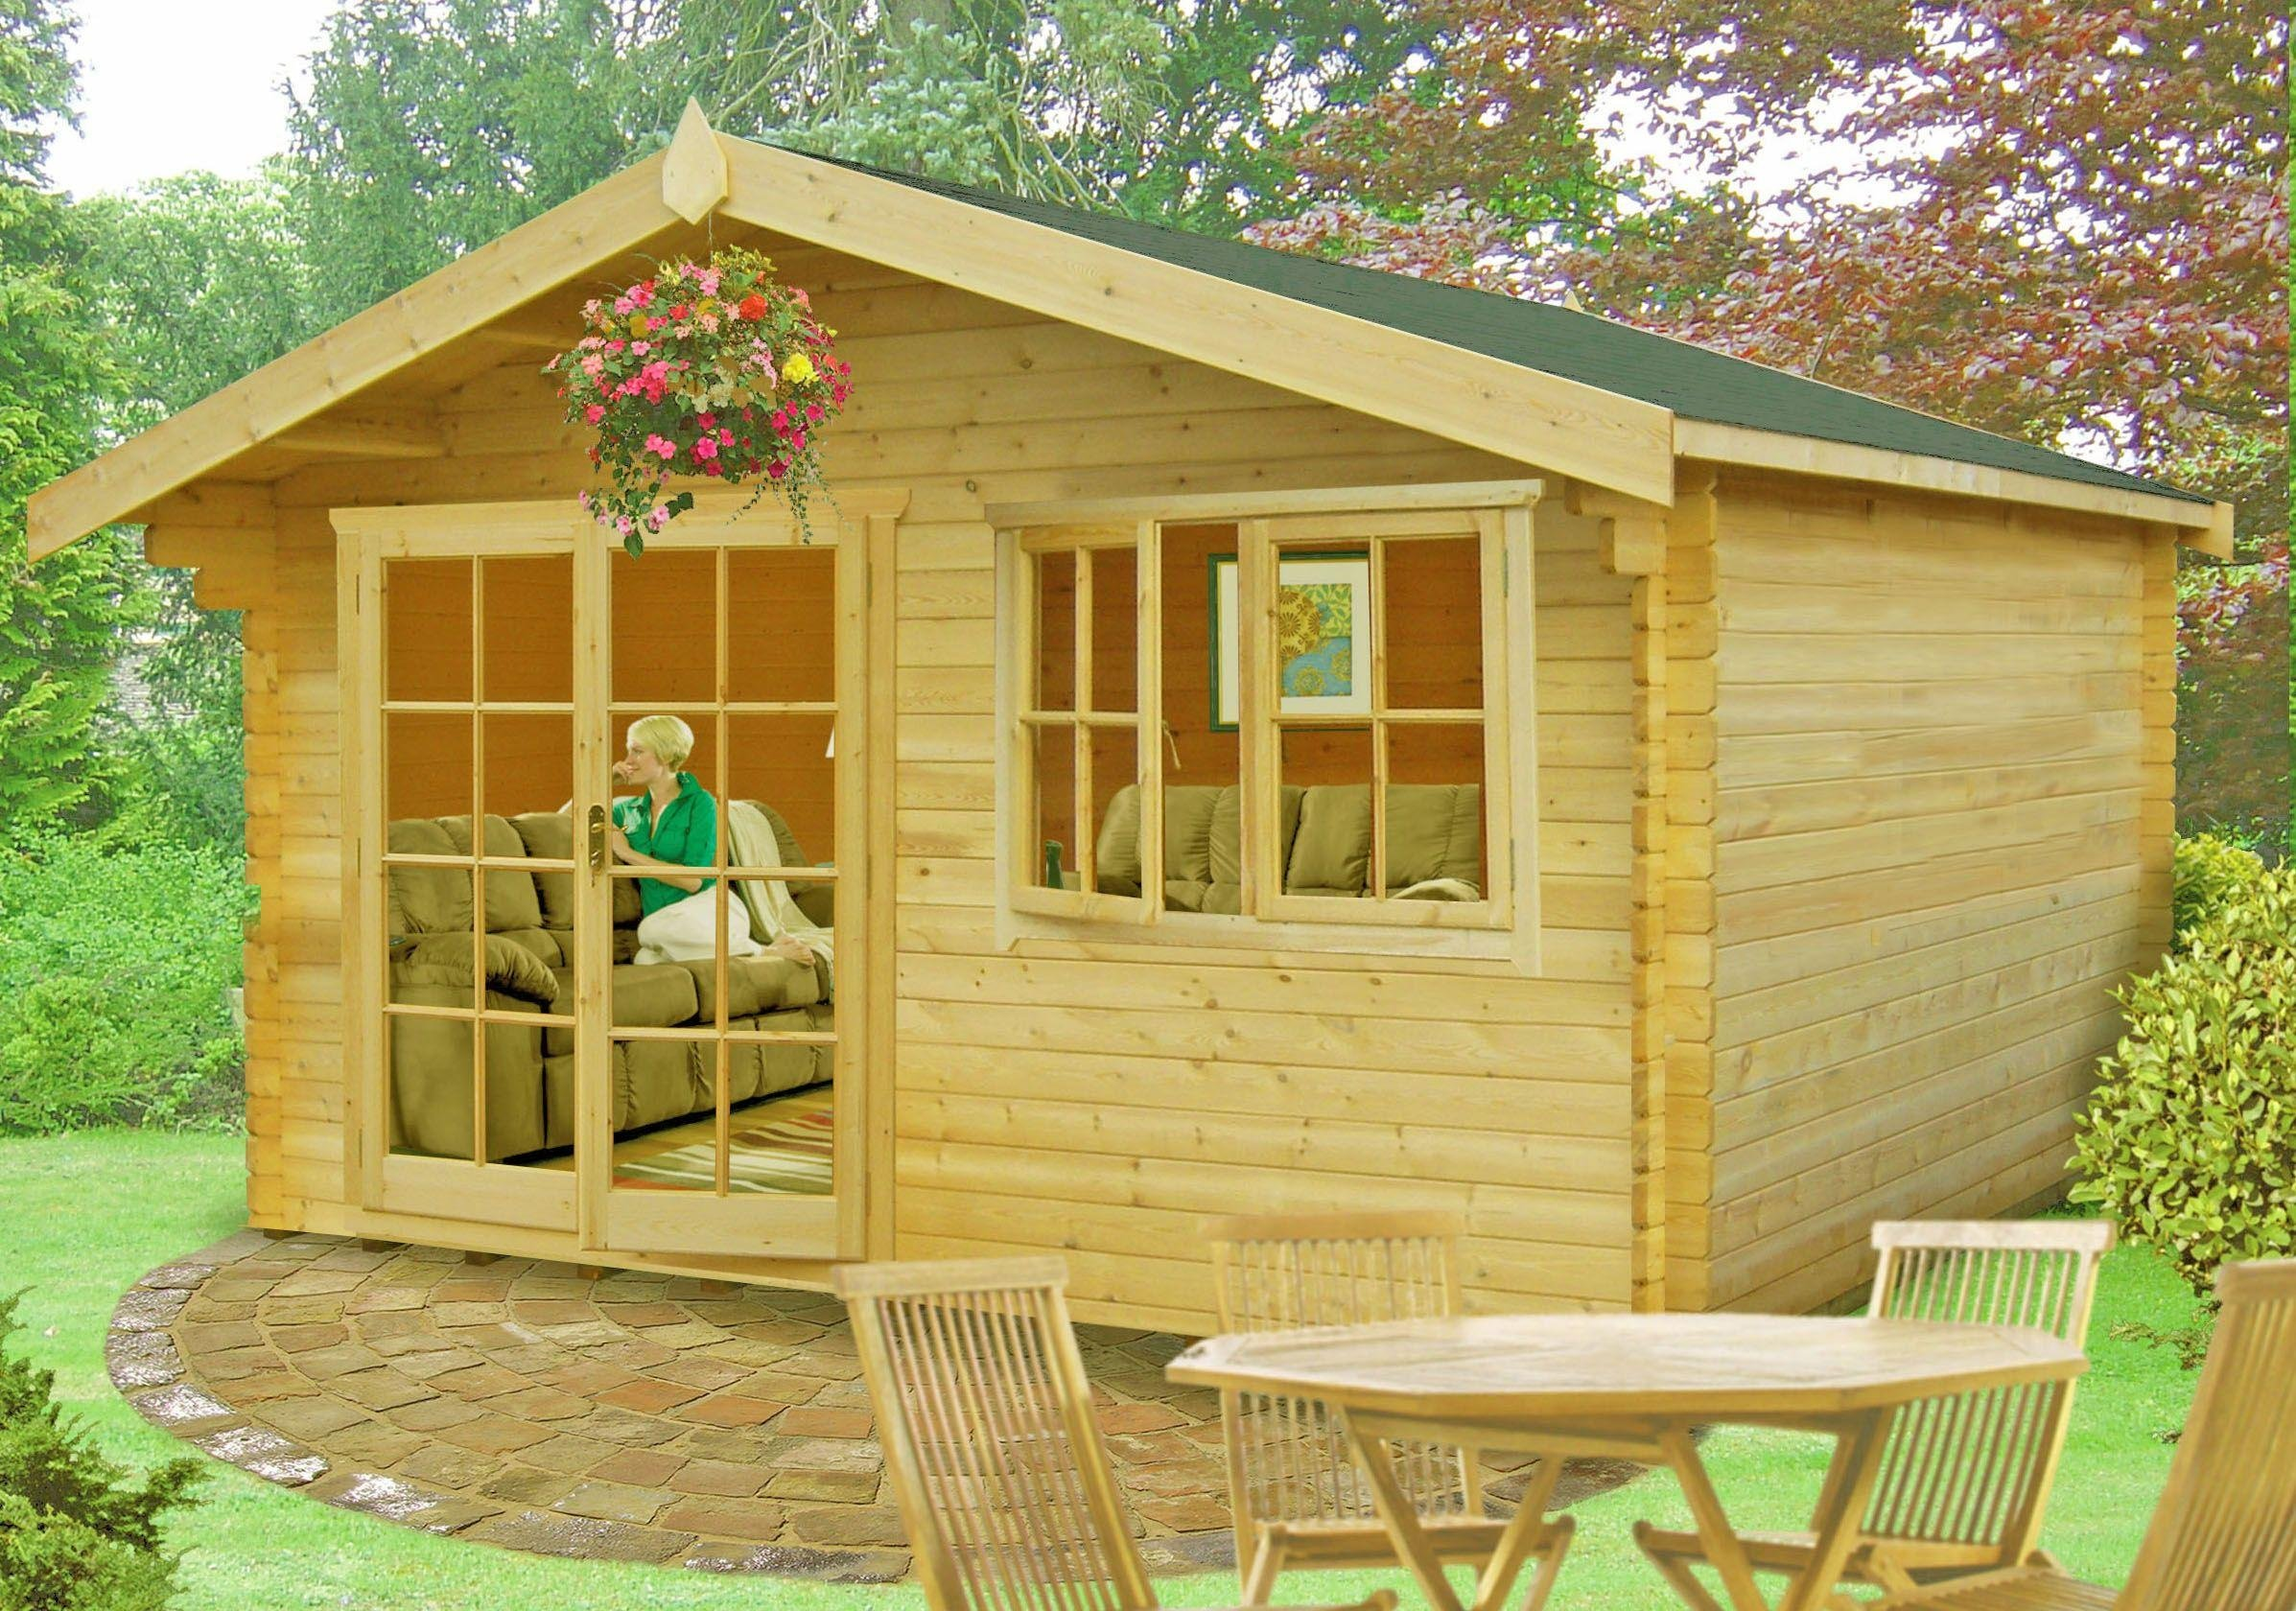 Image of Homewood Abbeyford Wooden Cabin - 14 x 14ft.